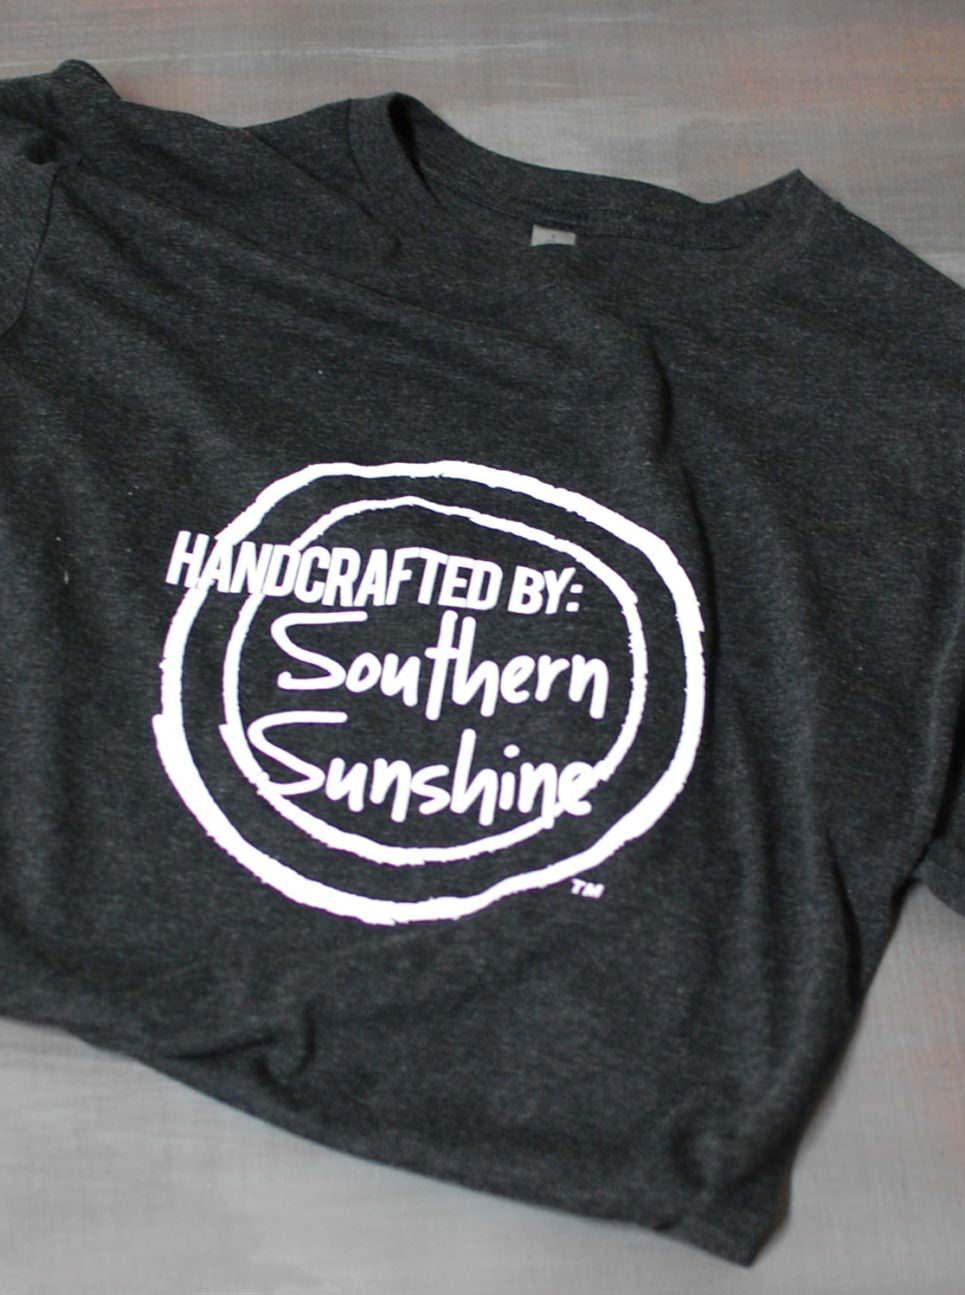 Handcrafted by Southern Sunshine Shirt